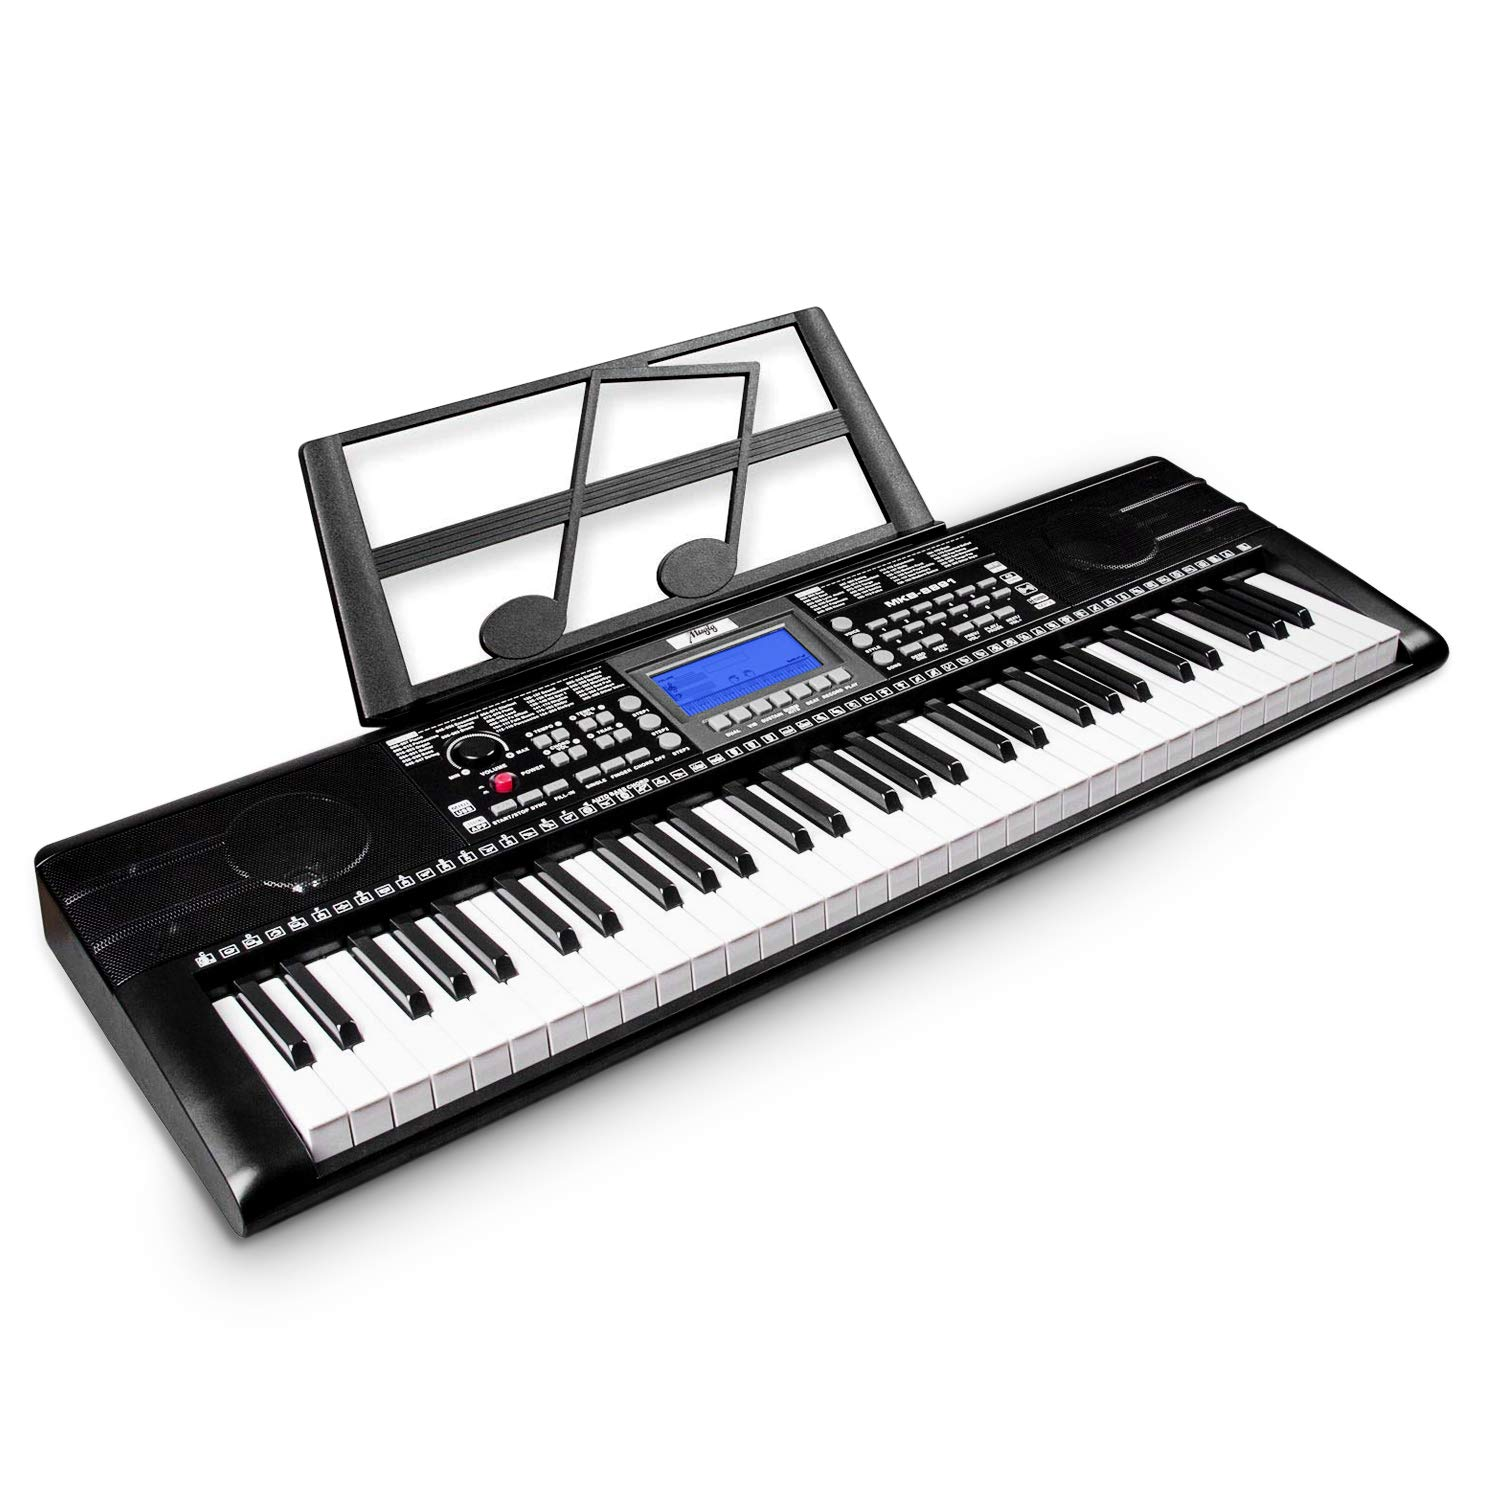 Keyboard Piano, Mugig 61-key Portable Electric Keyboard Piano with Sheet Music Stand, 3 Intelligent Education Teaching Mode, Dual Power Supply&USB Port (Kids & Adults) by Mugig (Image #1)